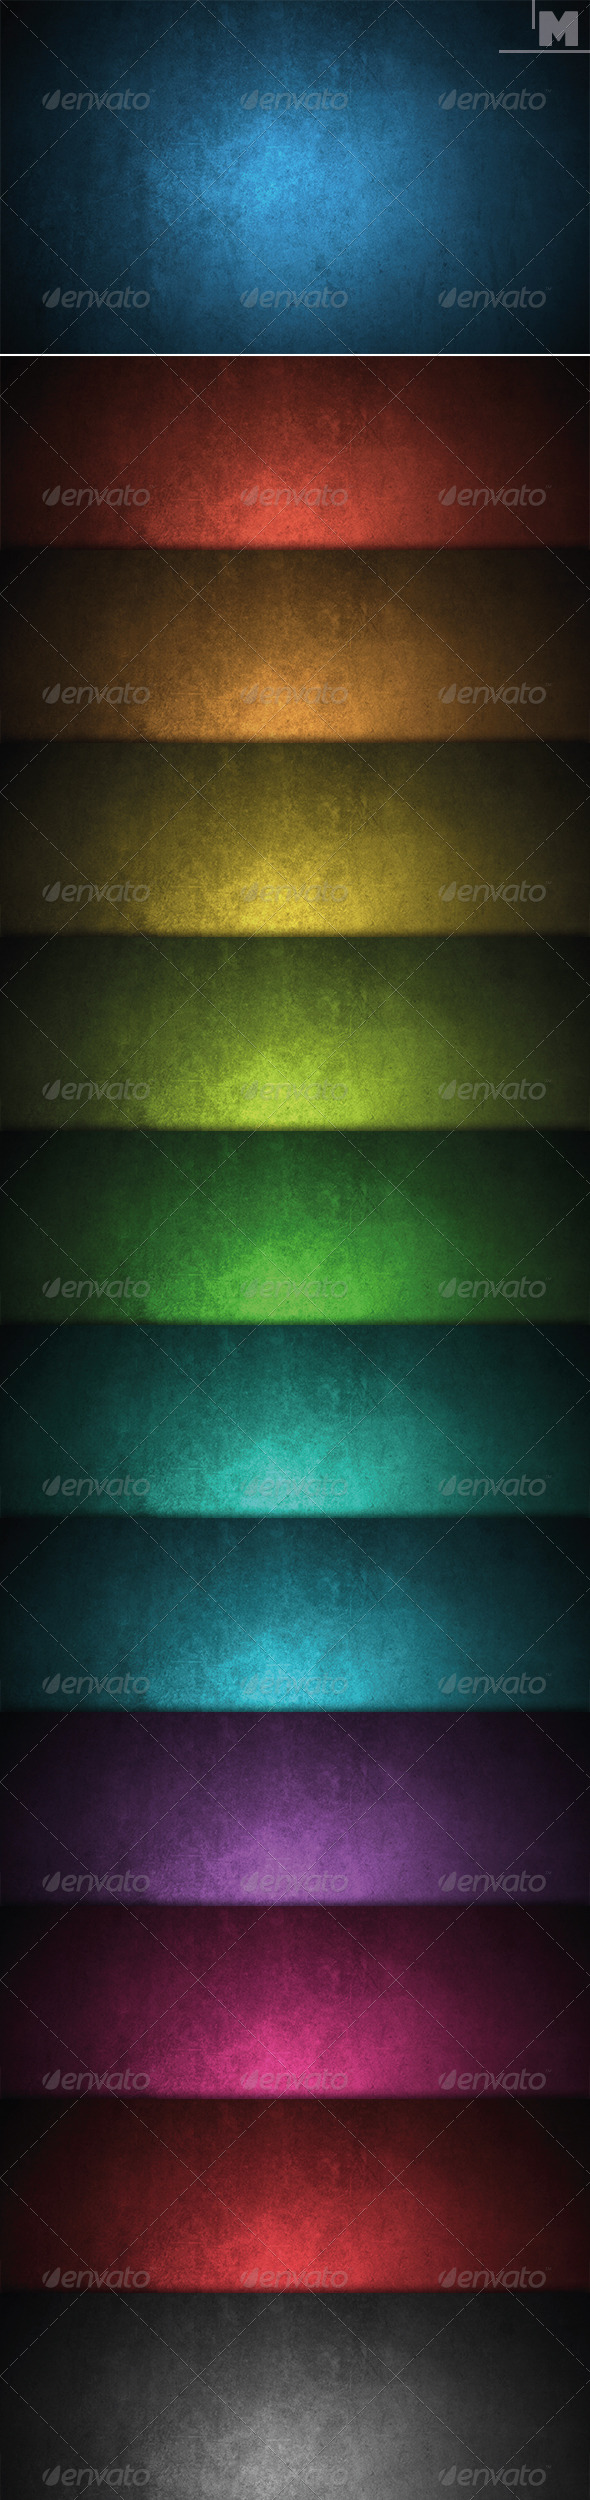 GraphicRiver Grunge Colored Backgrounds 7827129